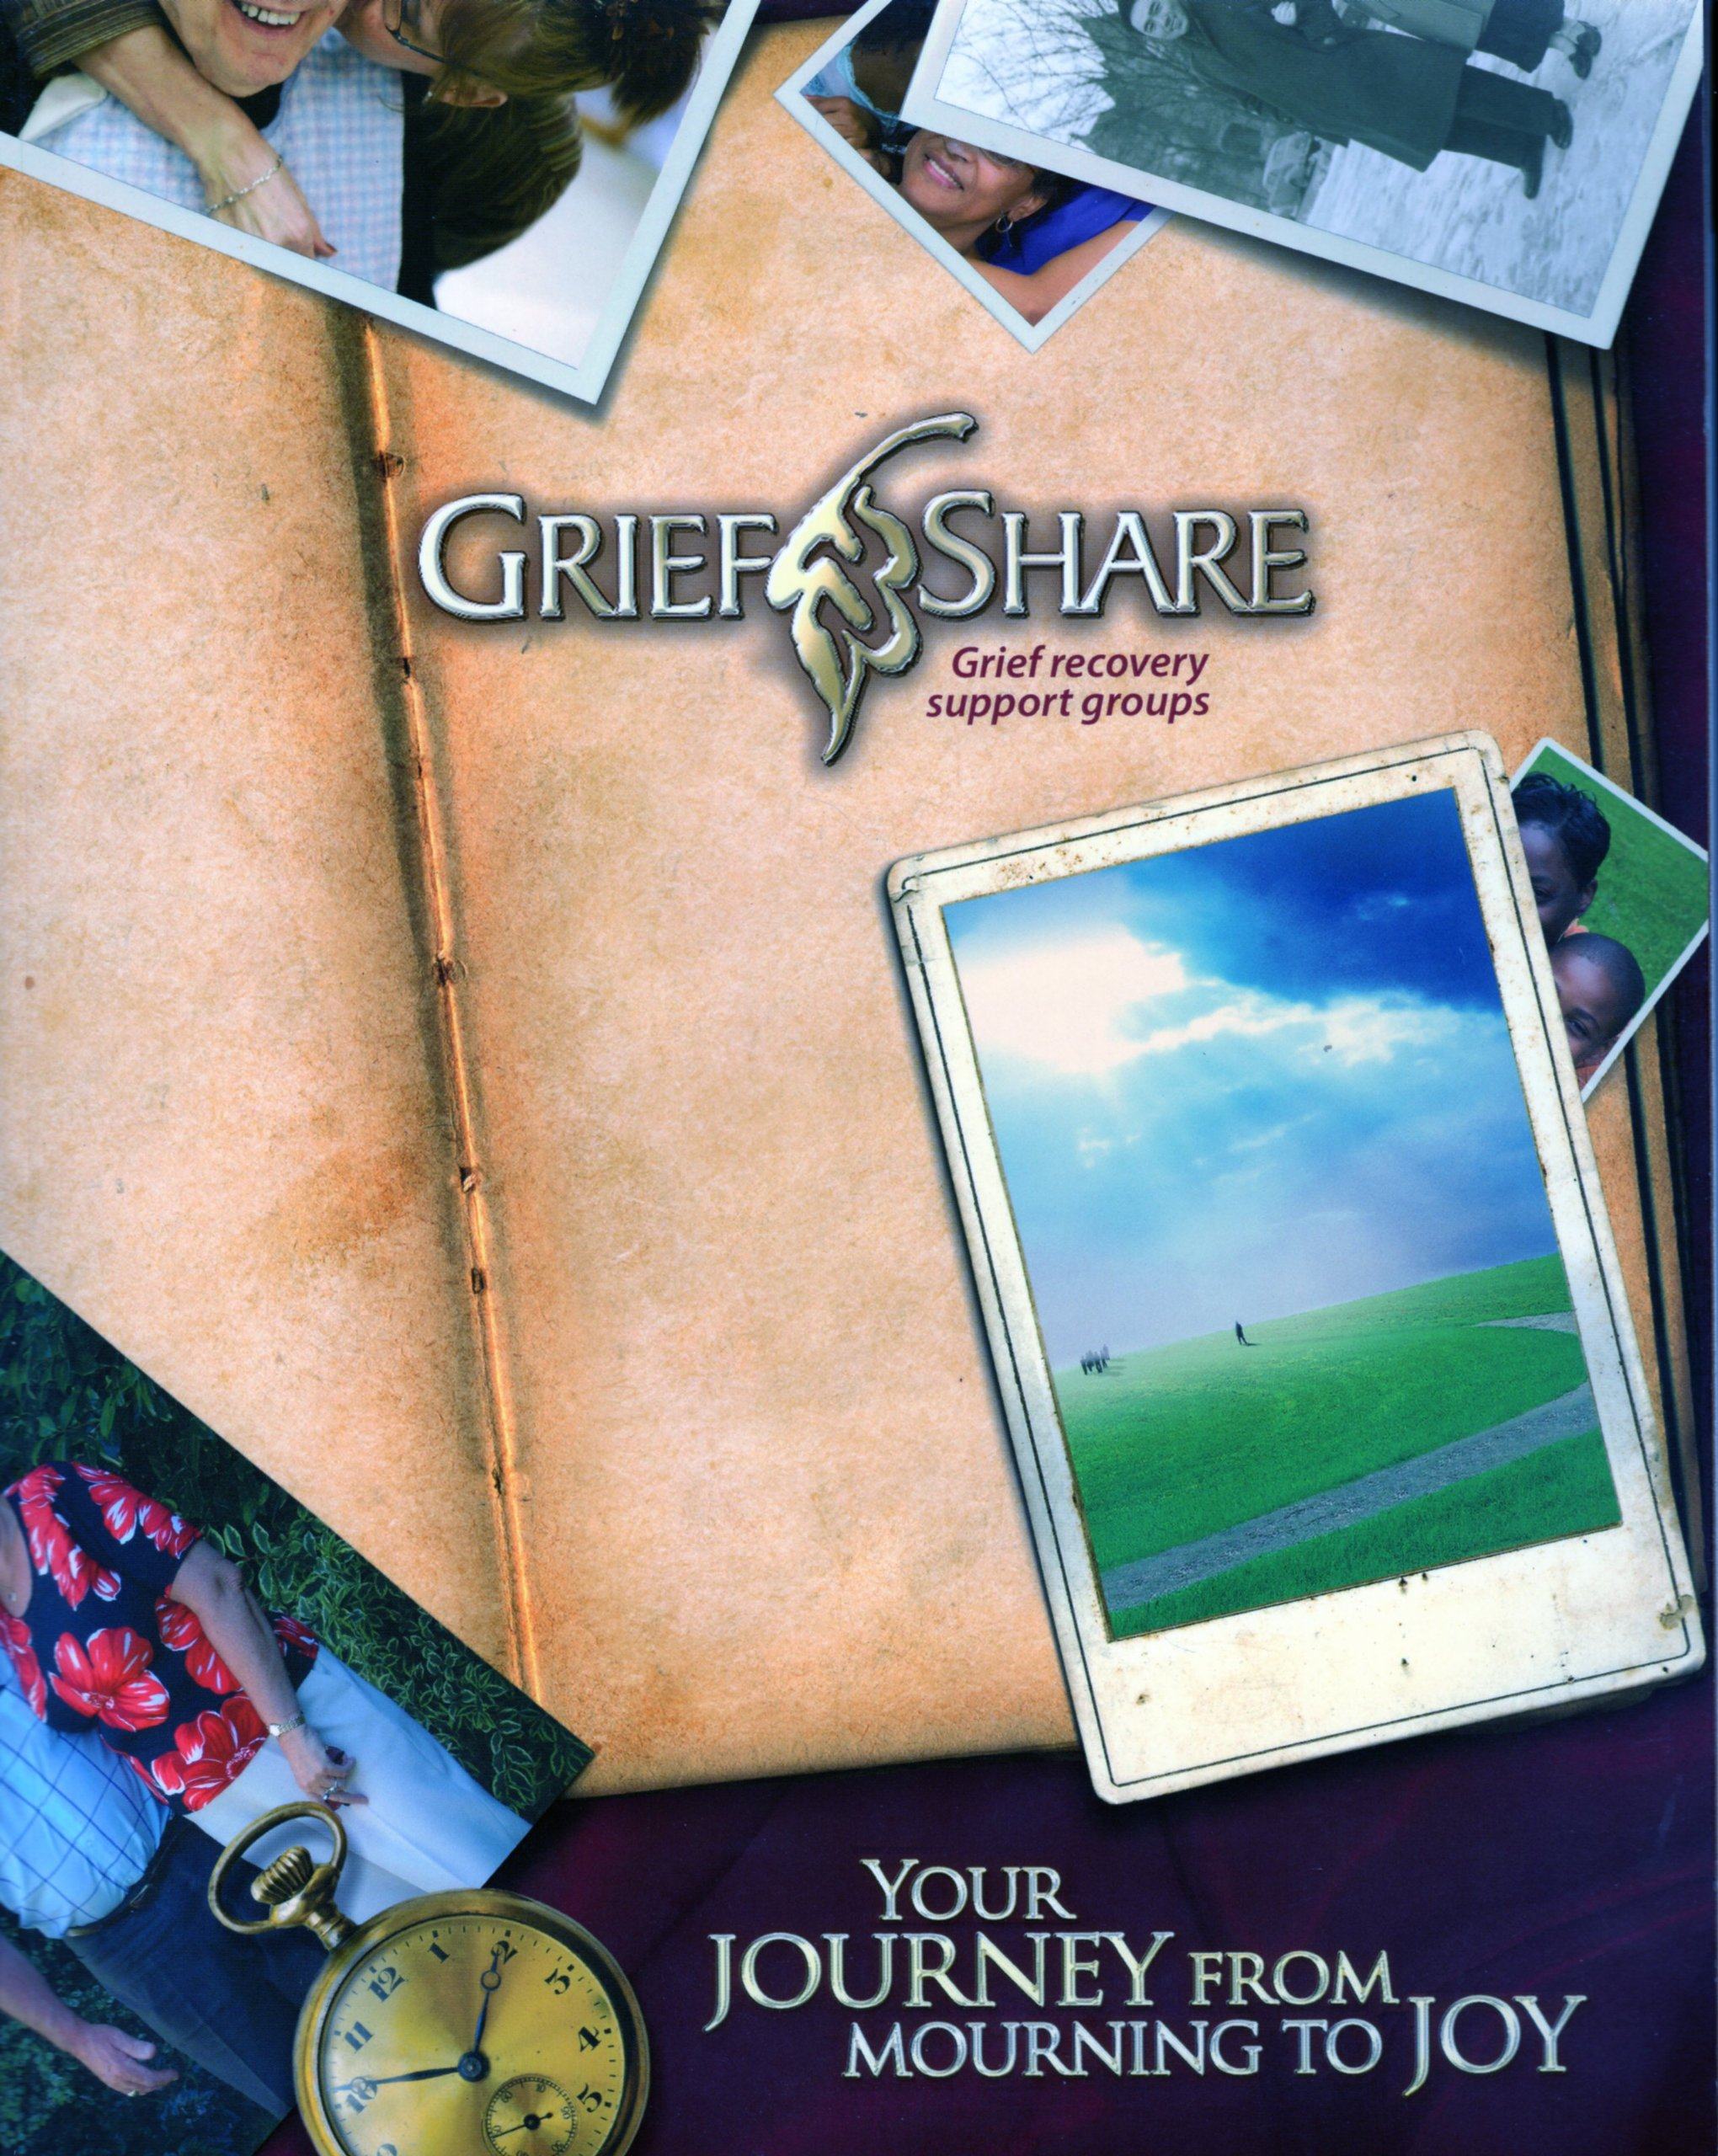 Grief Share Grief Recovery Support Groups Workbook (Your Journey From  Mourning To Joy): Grief Share: Amazon.com: Books